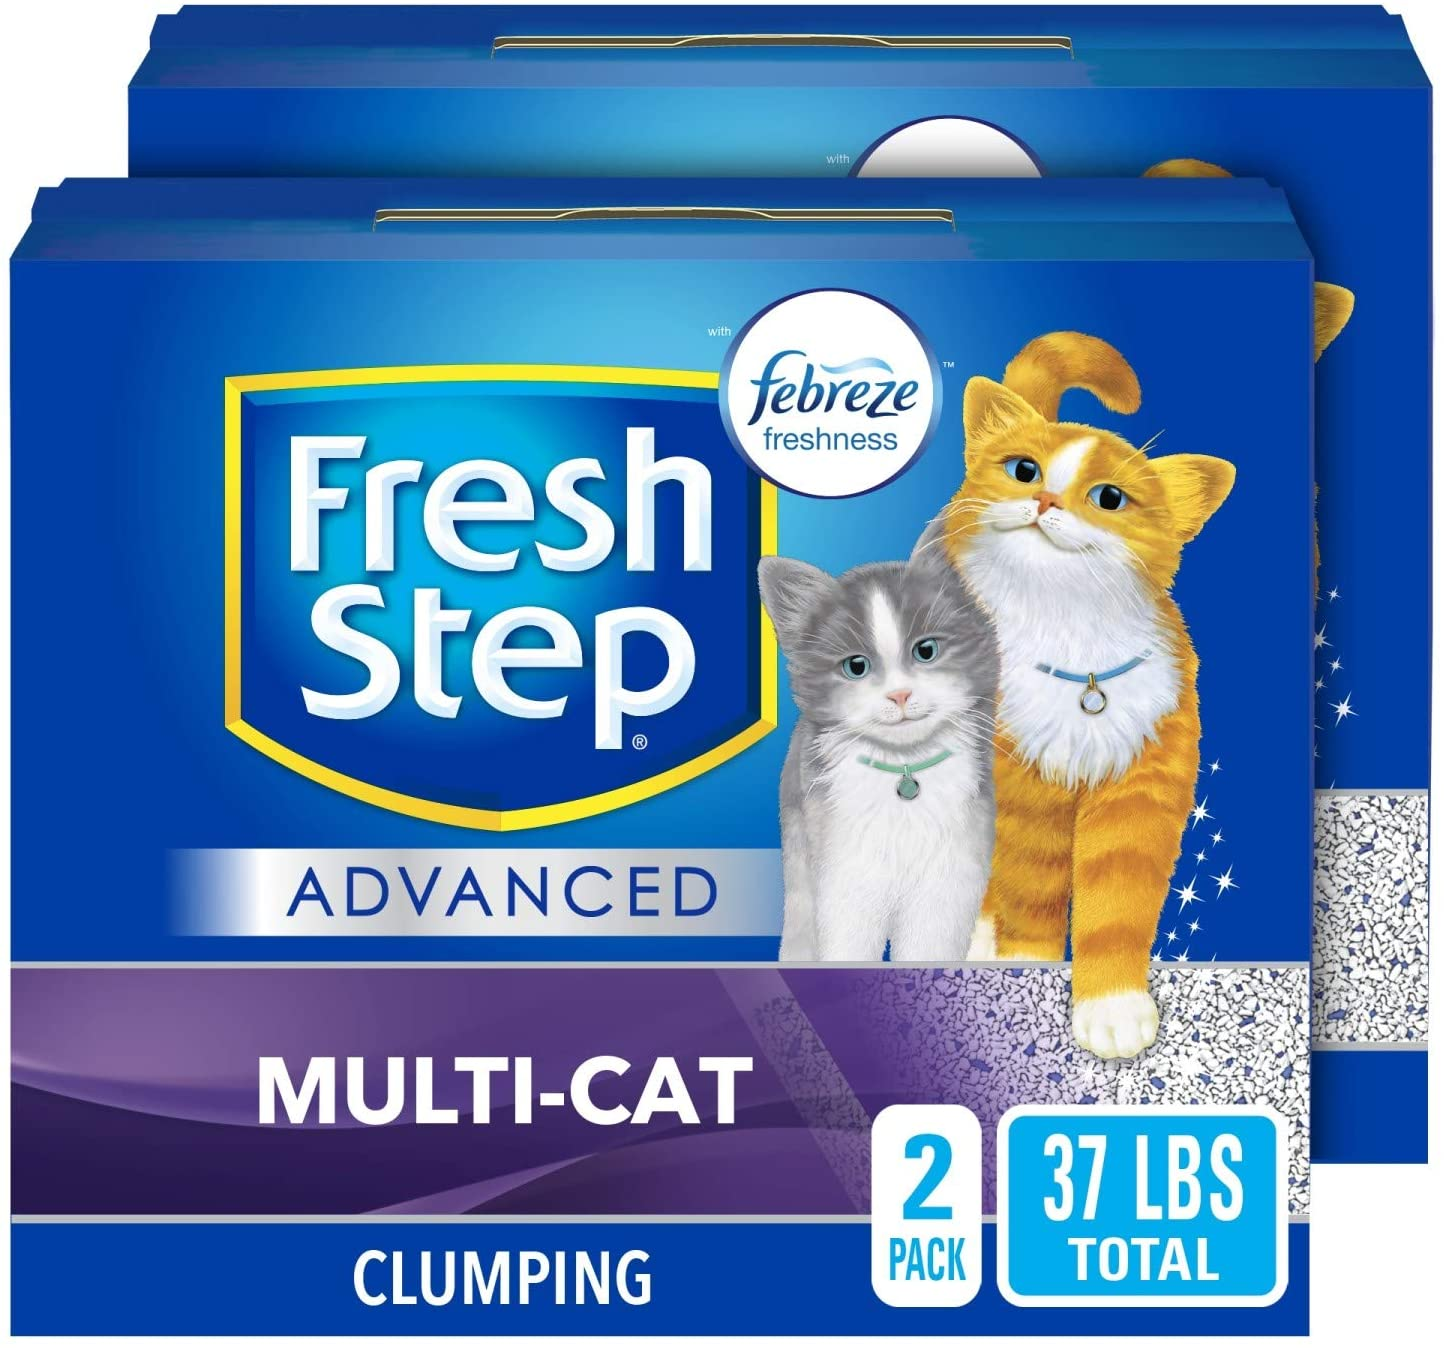 Fresh Step Multi-Cat Clumping Cat Litter With Febreze Freshness